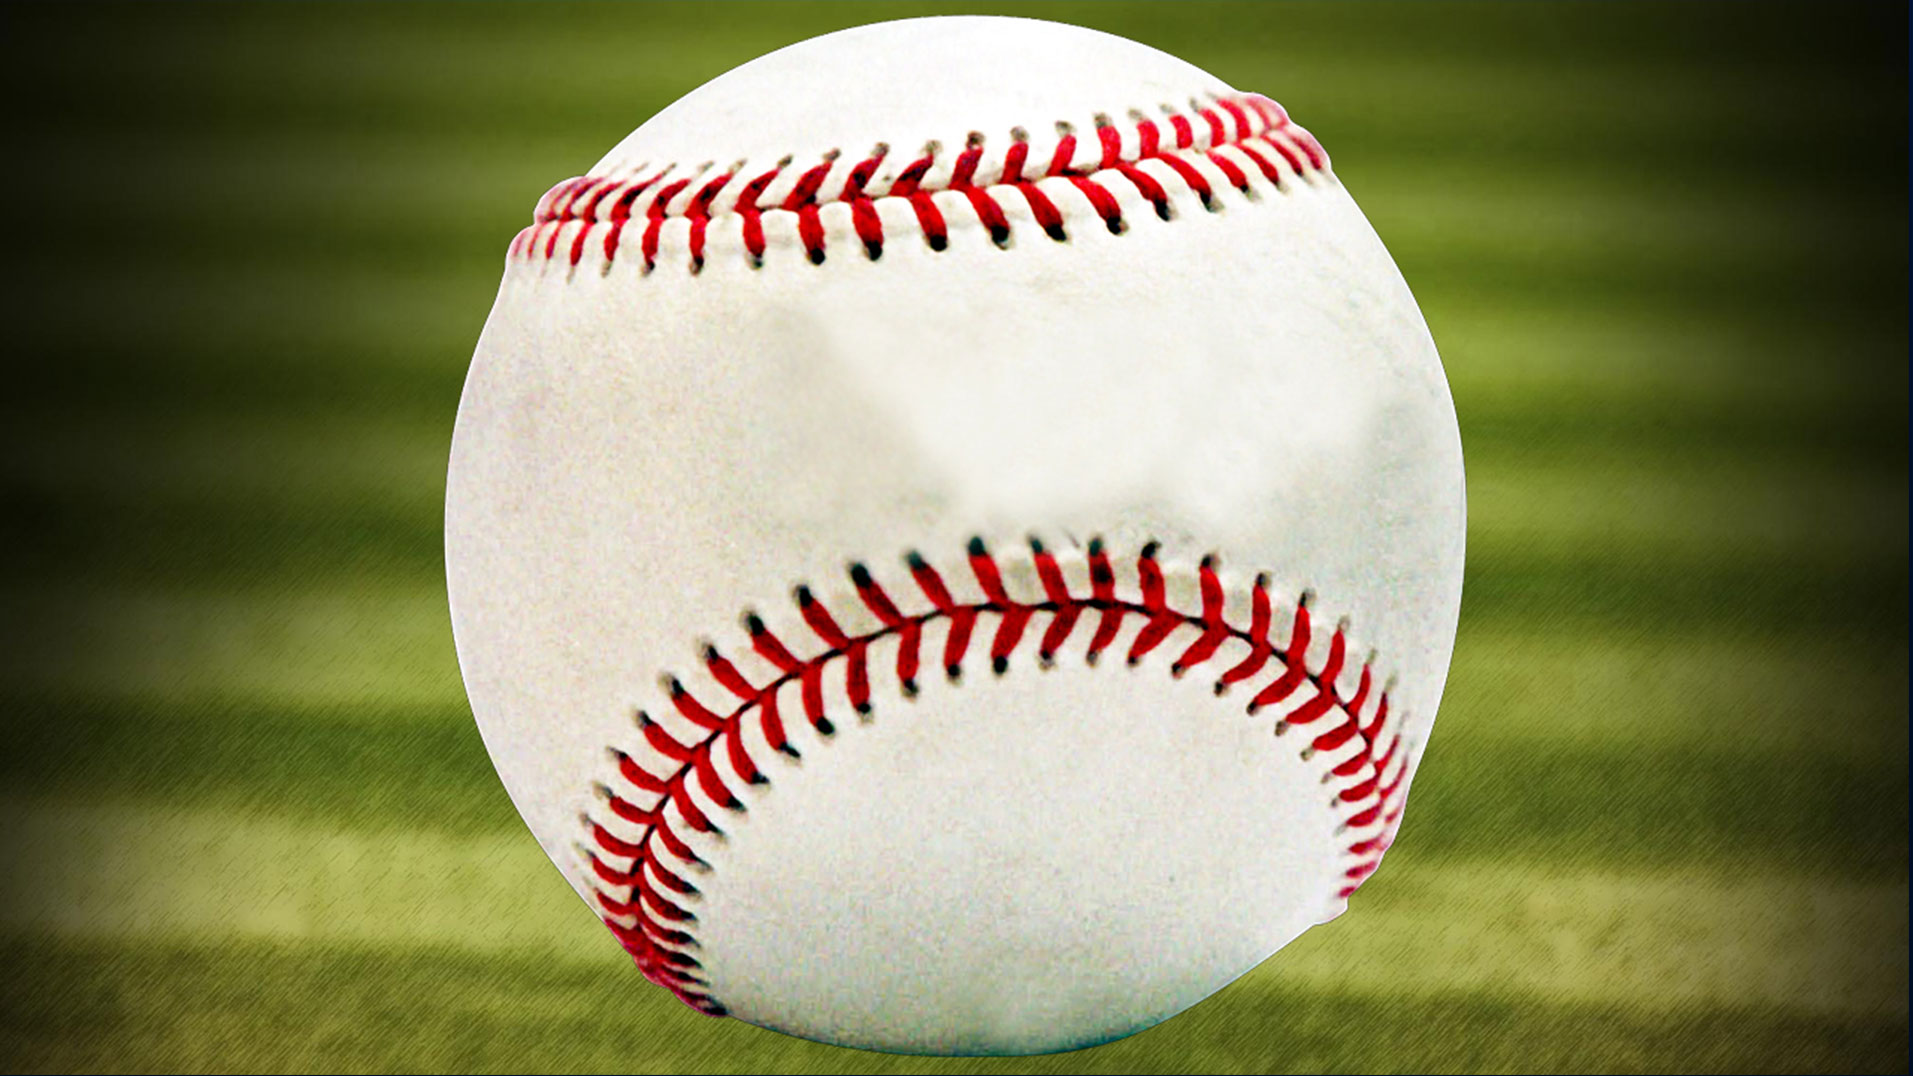 KELO-sports-generic-baseball_1529437977470.jpg